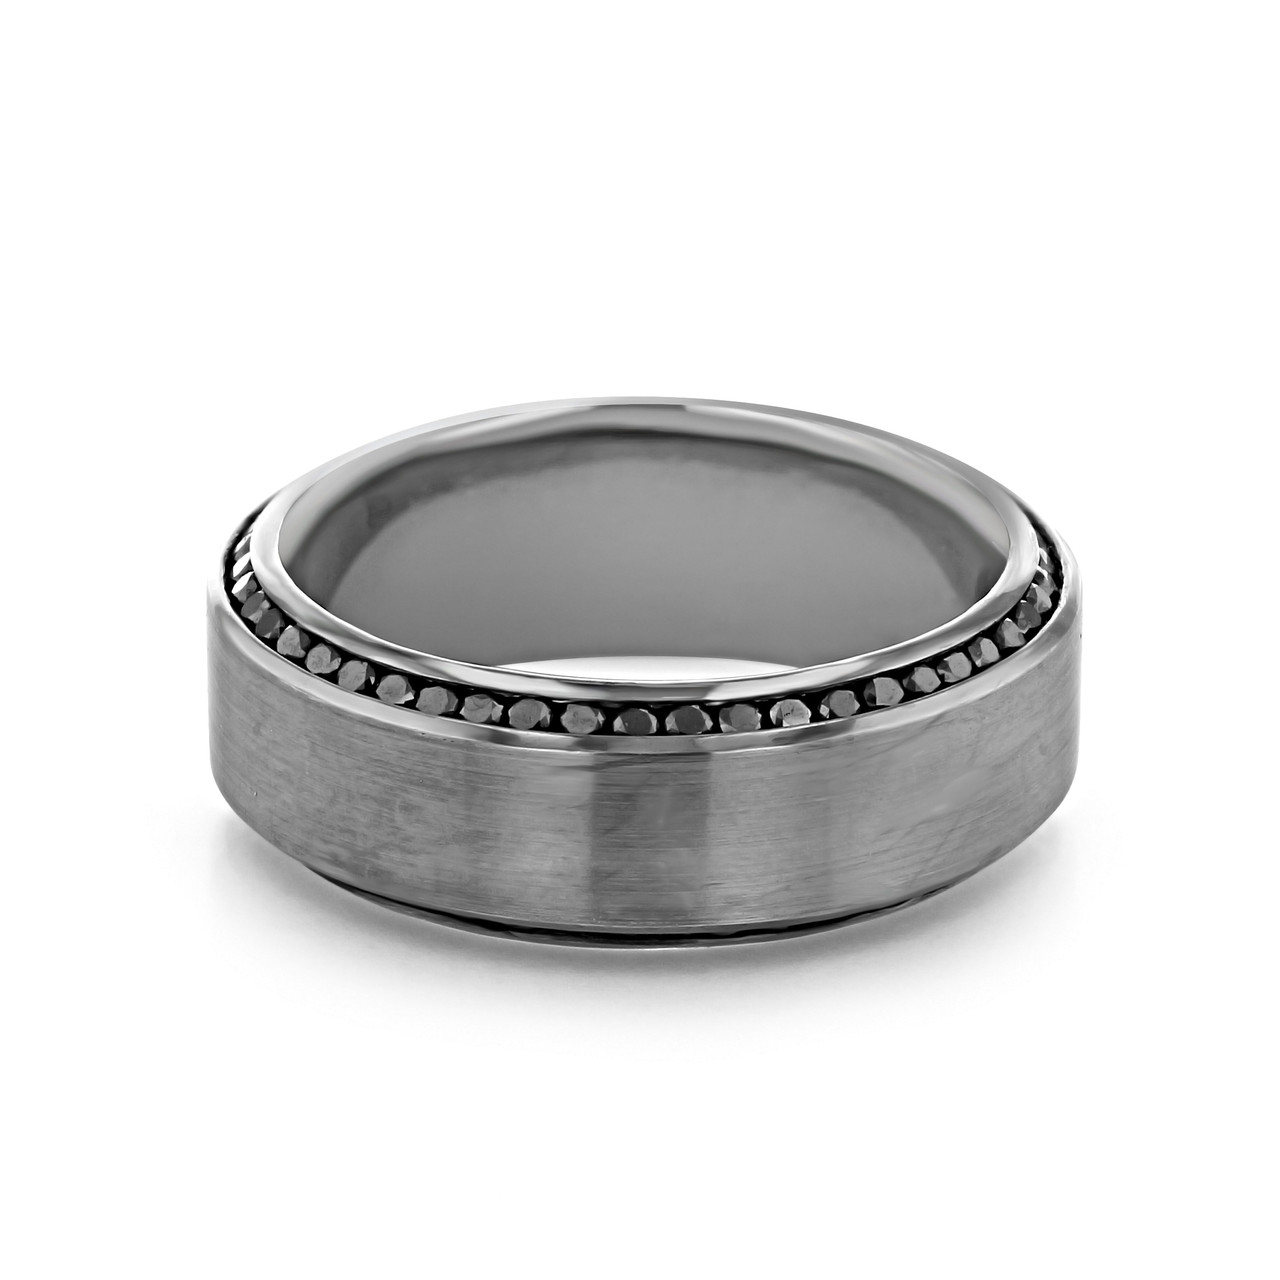 Signature Men S Wedding Band Wb525 Icing On The Ring